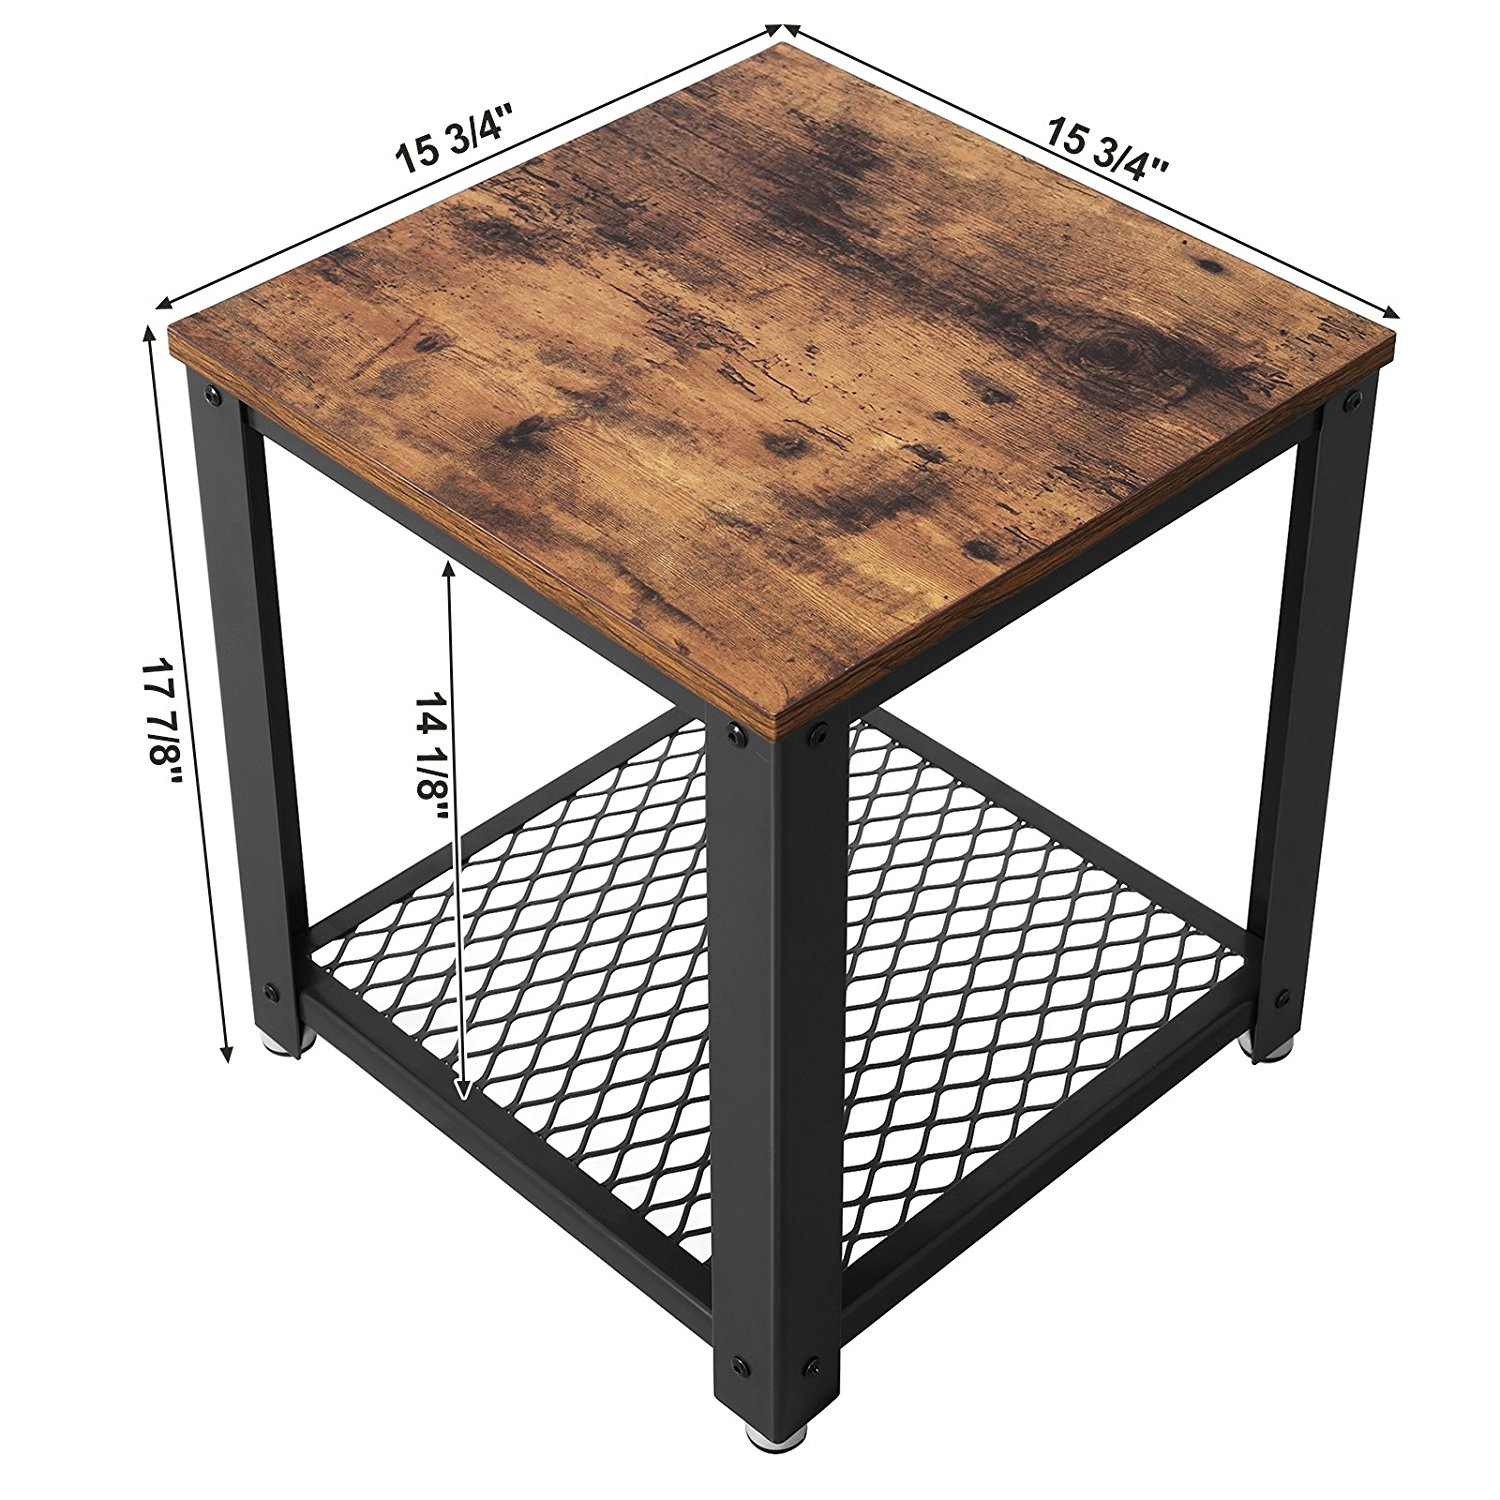 Vintage 2 Tiered End Table Square Frame Side Table With